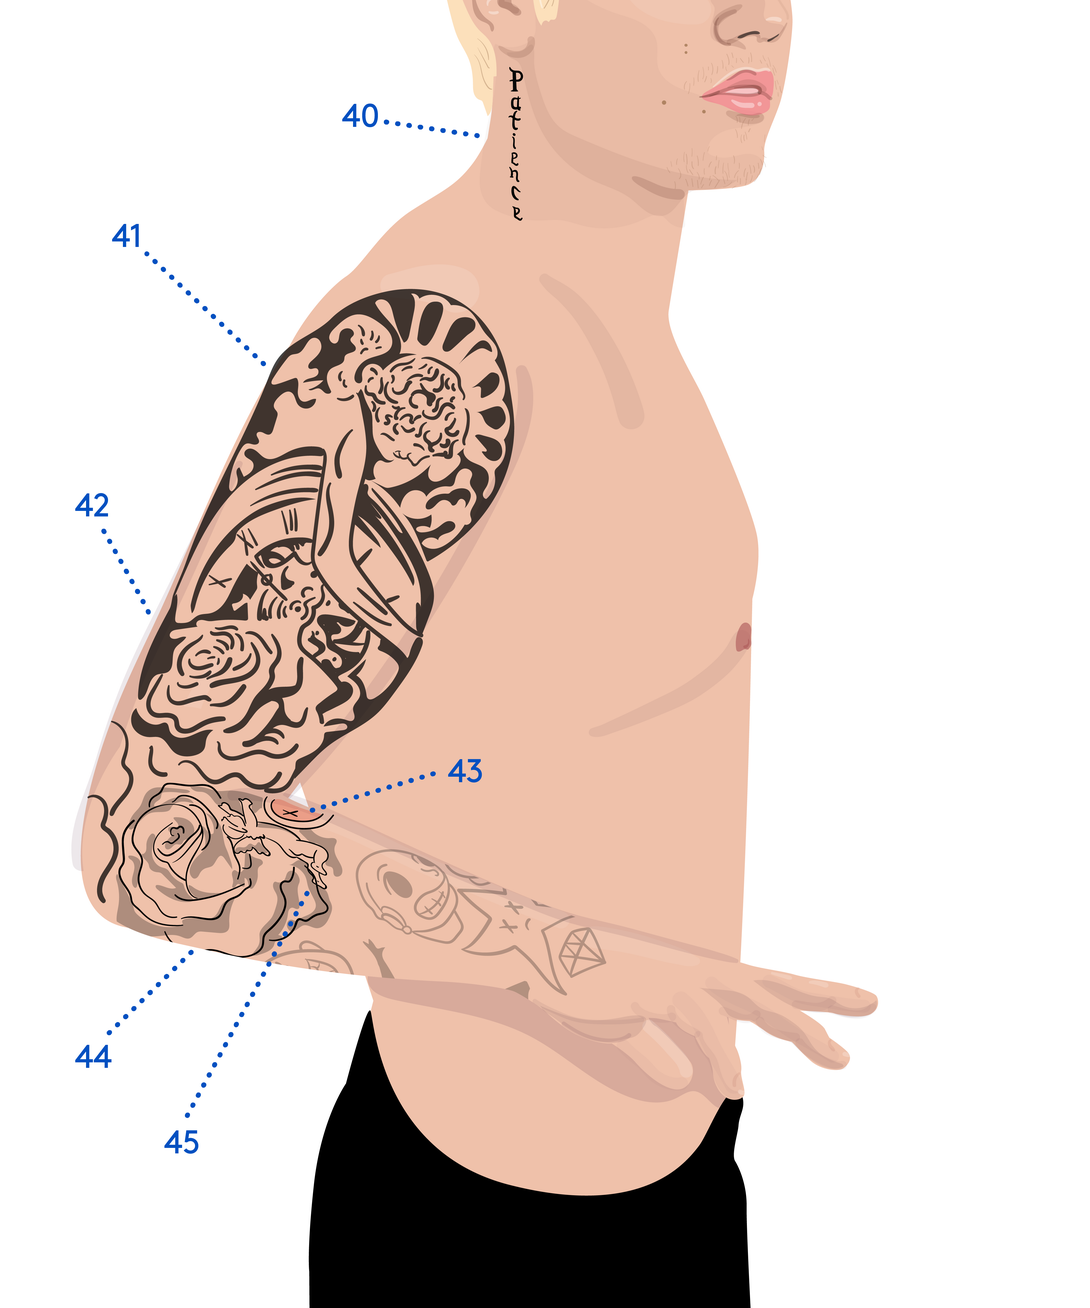 We Mapped Out Justin Bieber's Massive Tattoo Collection in